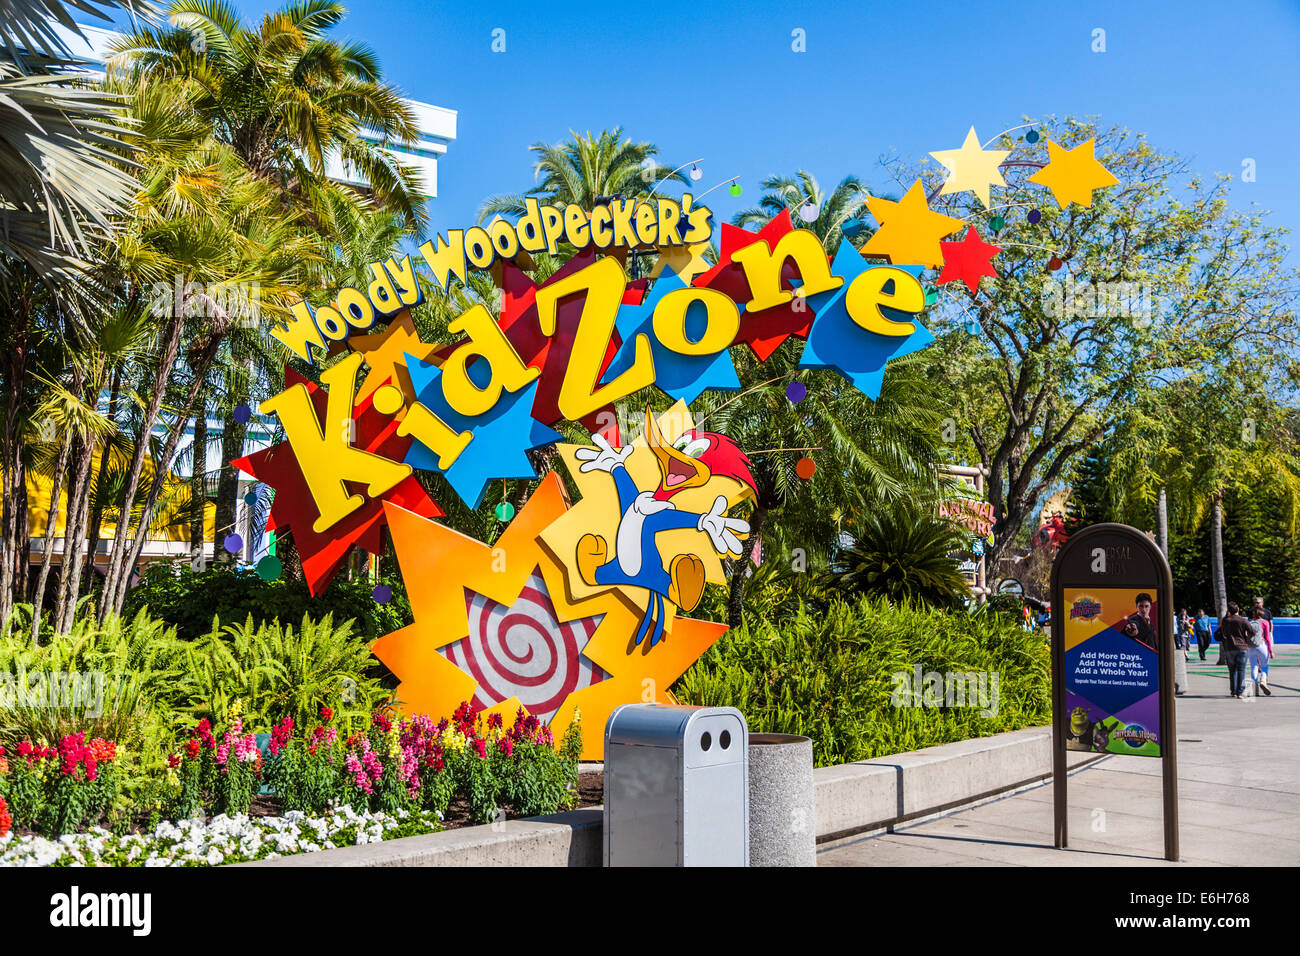 Sign at entrance to Woody Woodpecker's Kid Zone at Universal Studios in Orlando Florida - Stock Image